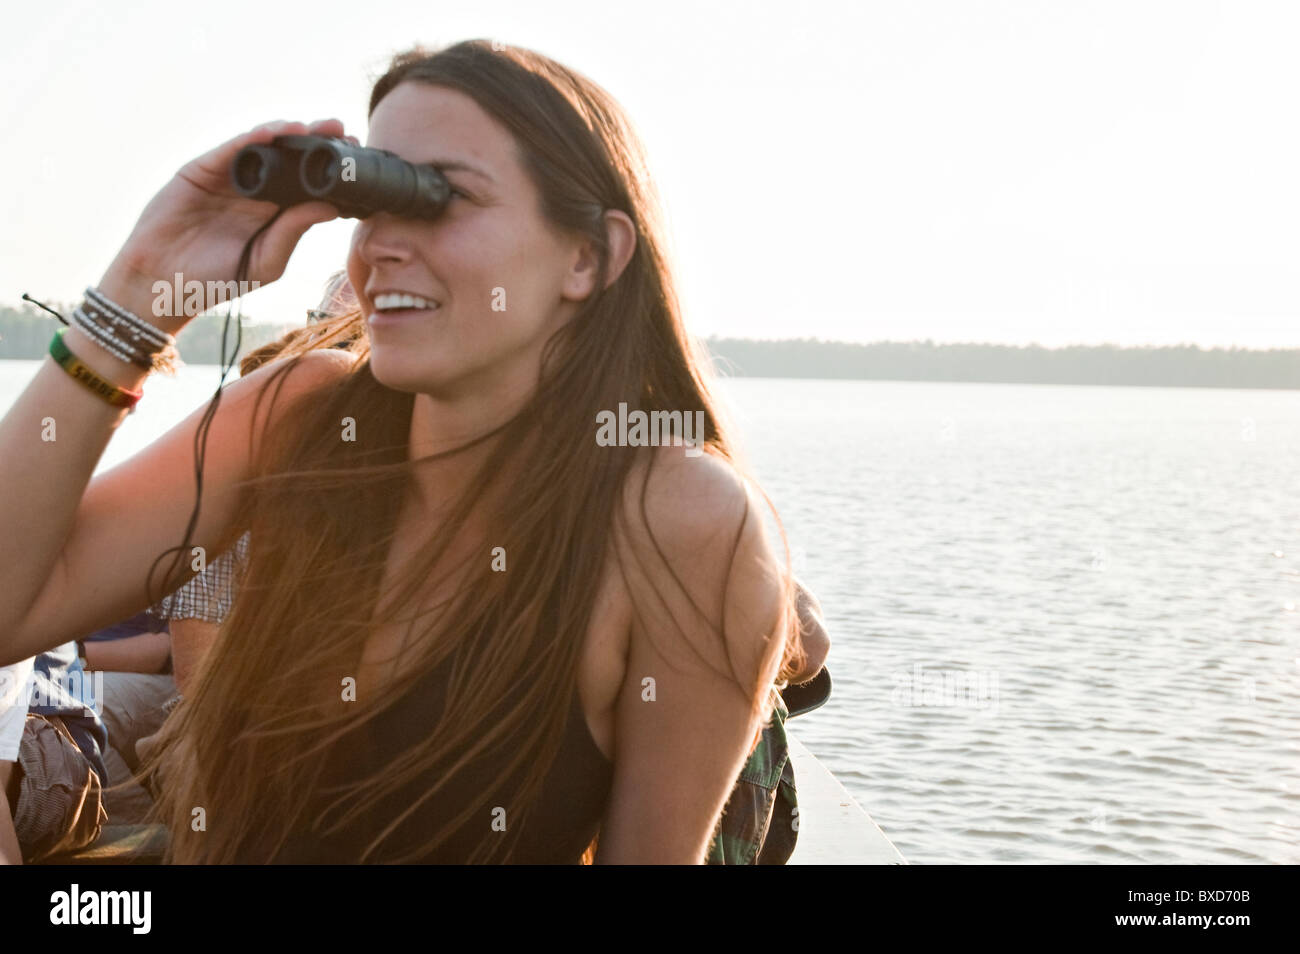 A young woman looks through binoculars at various types of birds on lake Sandoval in the amazon rainforest. - Stock Image